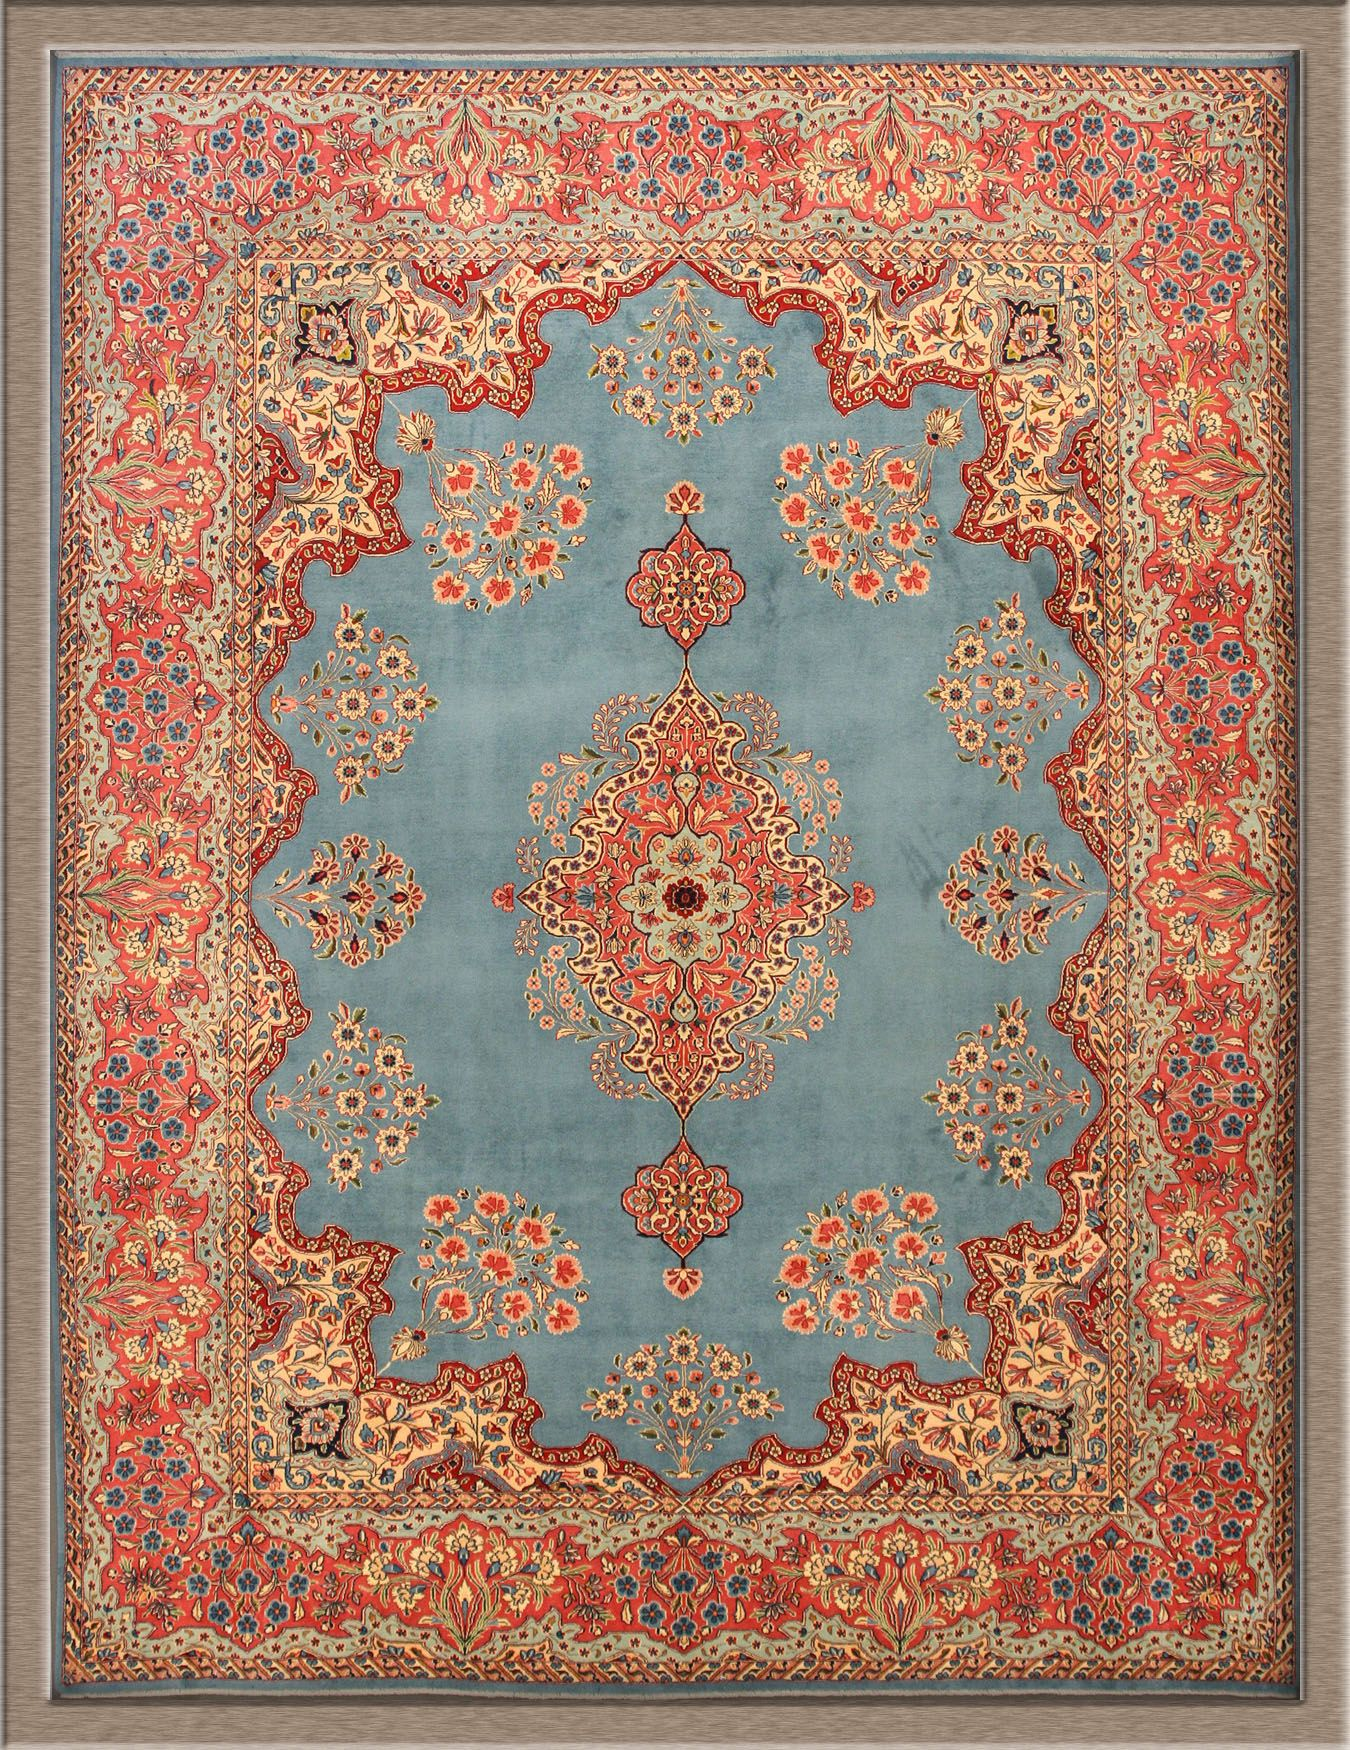 The Exotic Persian Rugs For Your Living Room Floor Decor Kerman With Light Blue And Orange Base Color